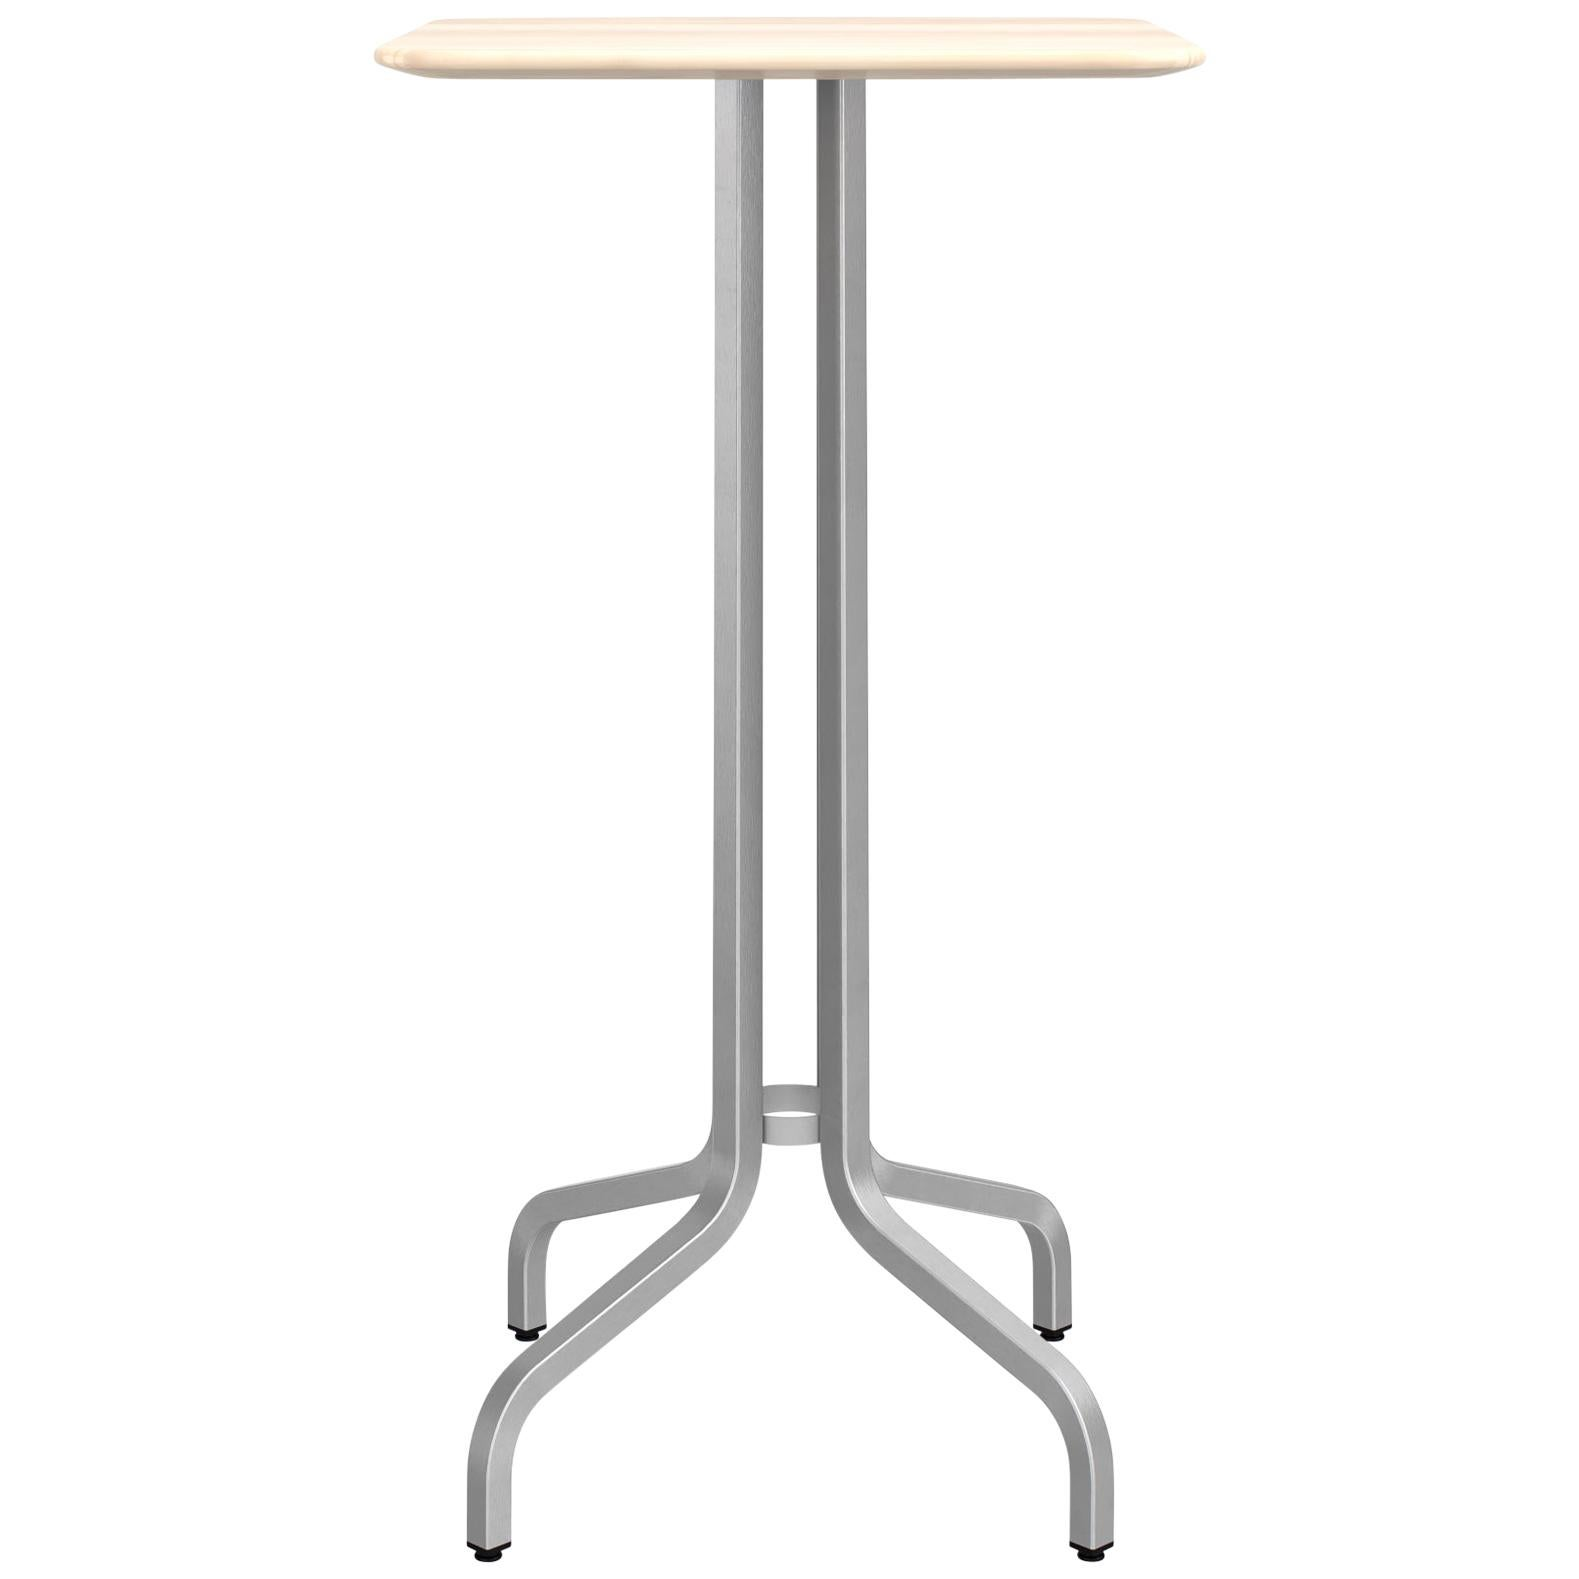 Emeco 1 Inch Small Bar Table with Aluminum Legs & Wood Top by Jasper Morrison